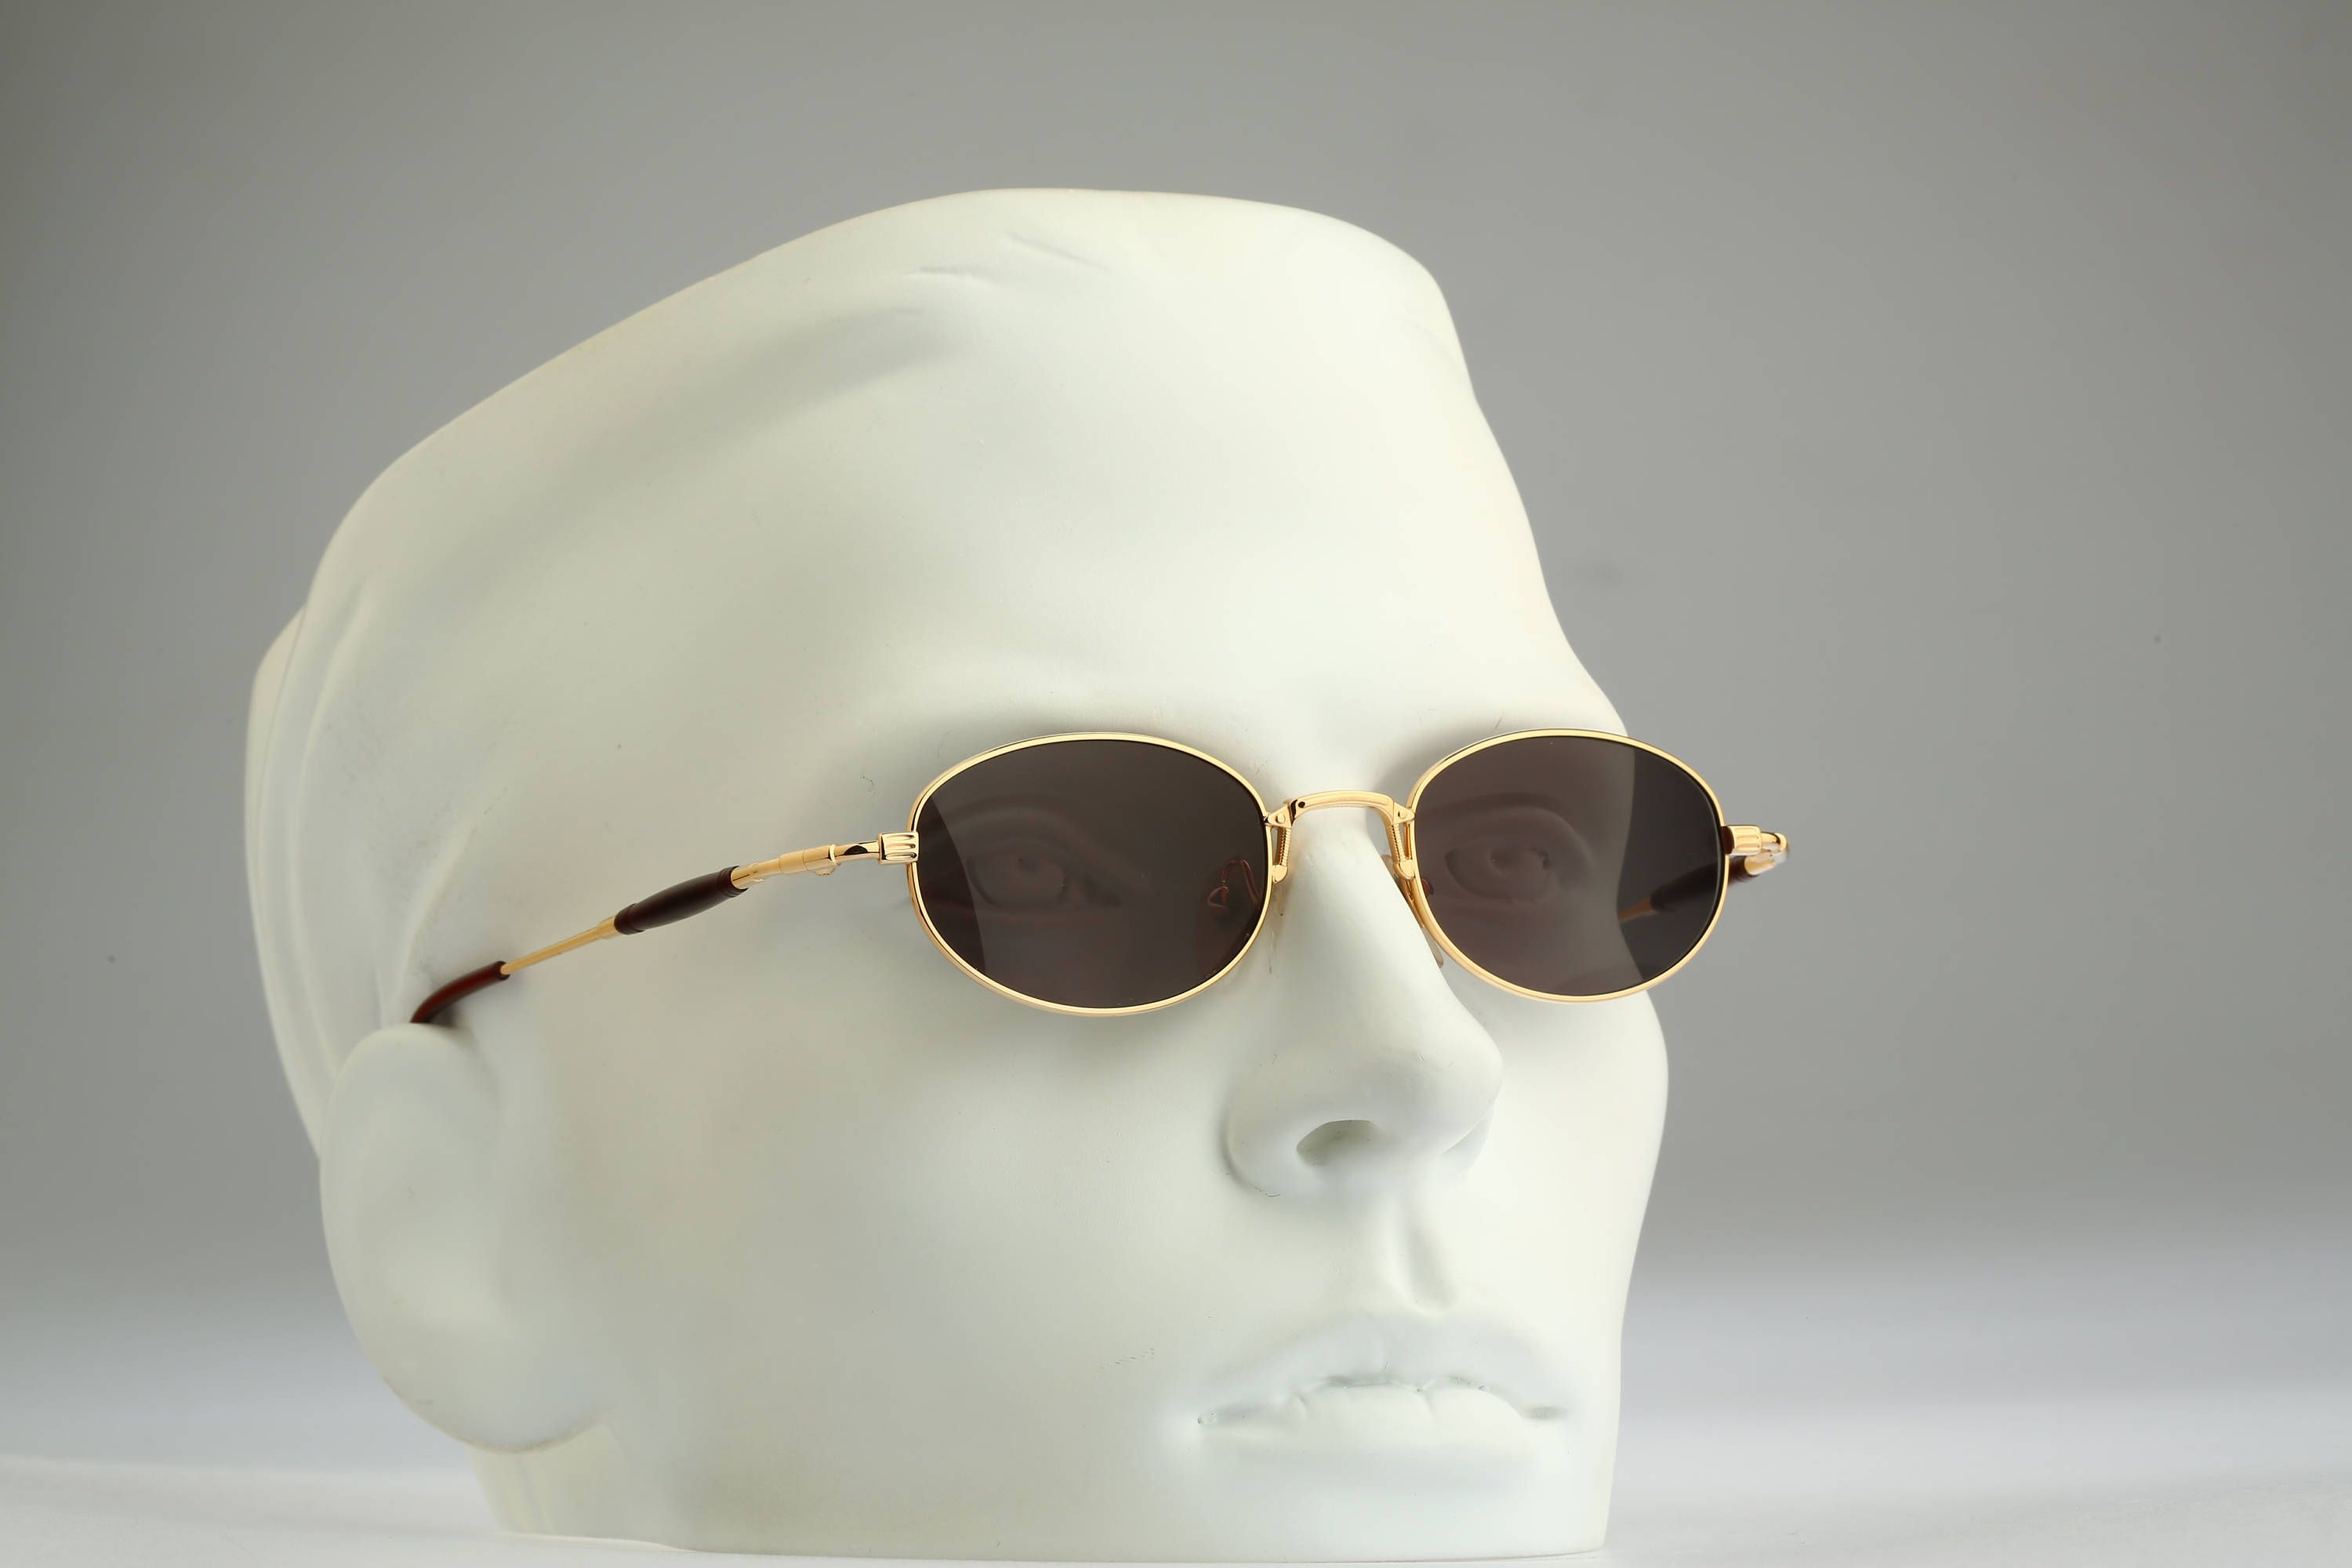 Jean Paul Gaultier 55-7202 / 90s / Vintage sunglasses / NOS by ...